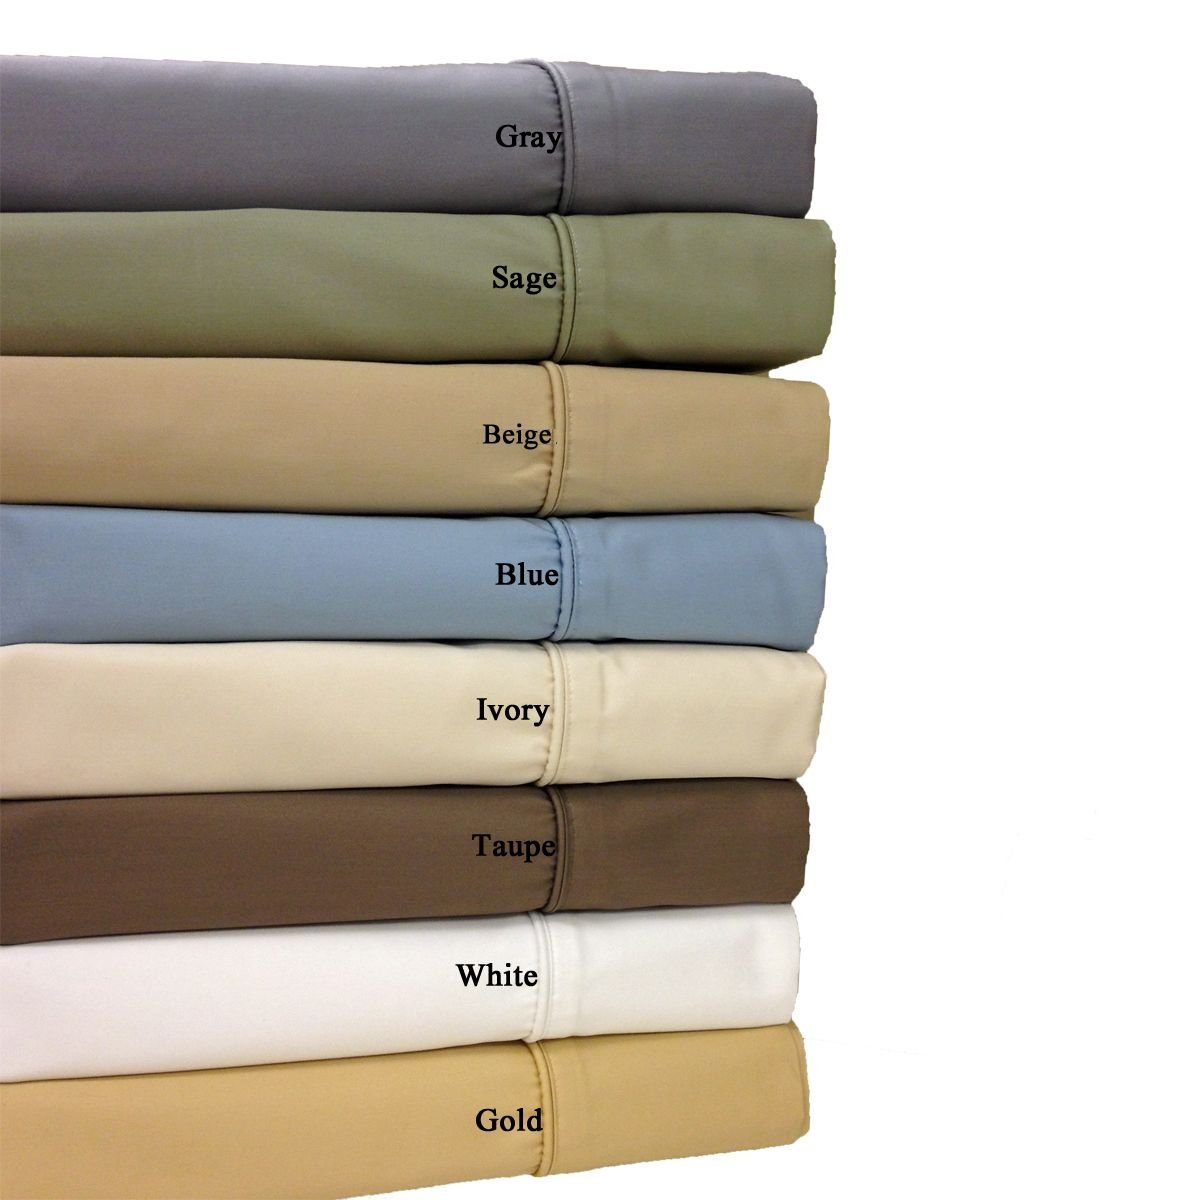 Top-Split-King: Adjustable King Size Ivory 650-Thread-Count Solid Sheet Set, Cotton-Blend Wrinkle-Free Sheets